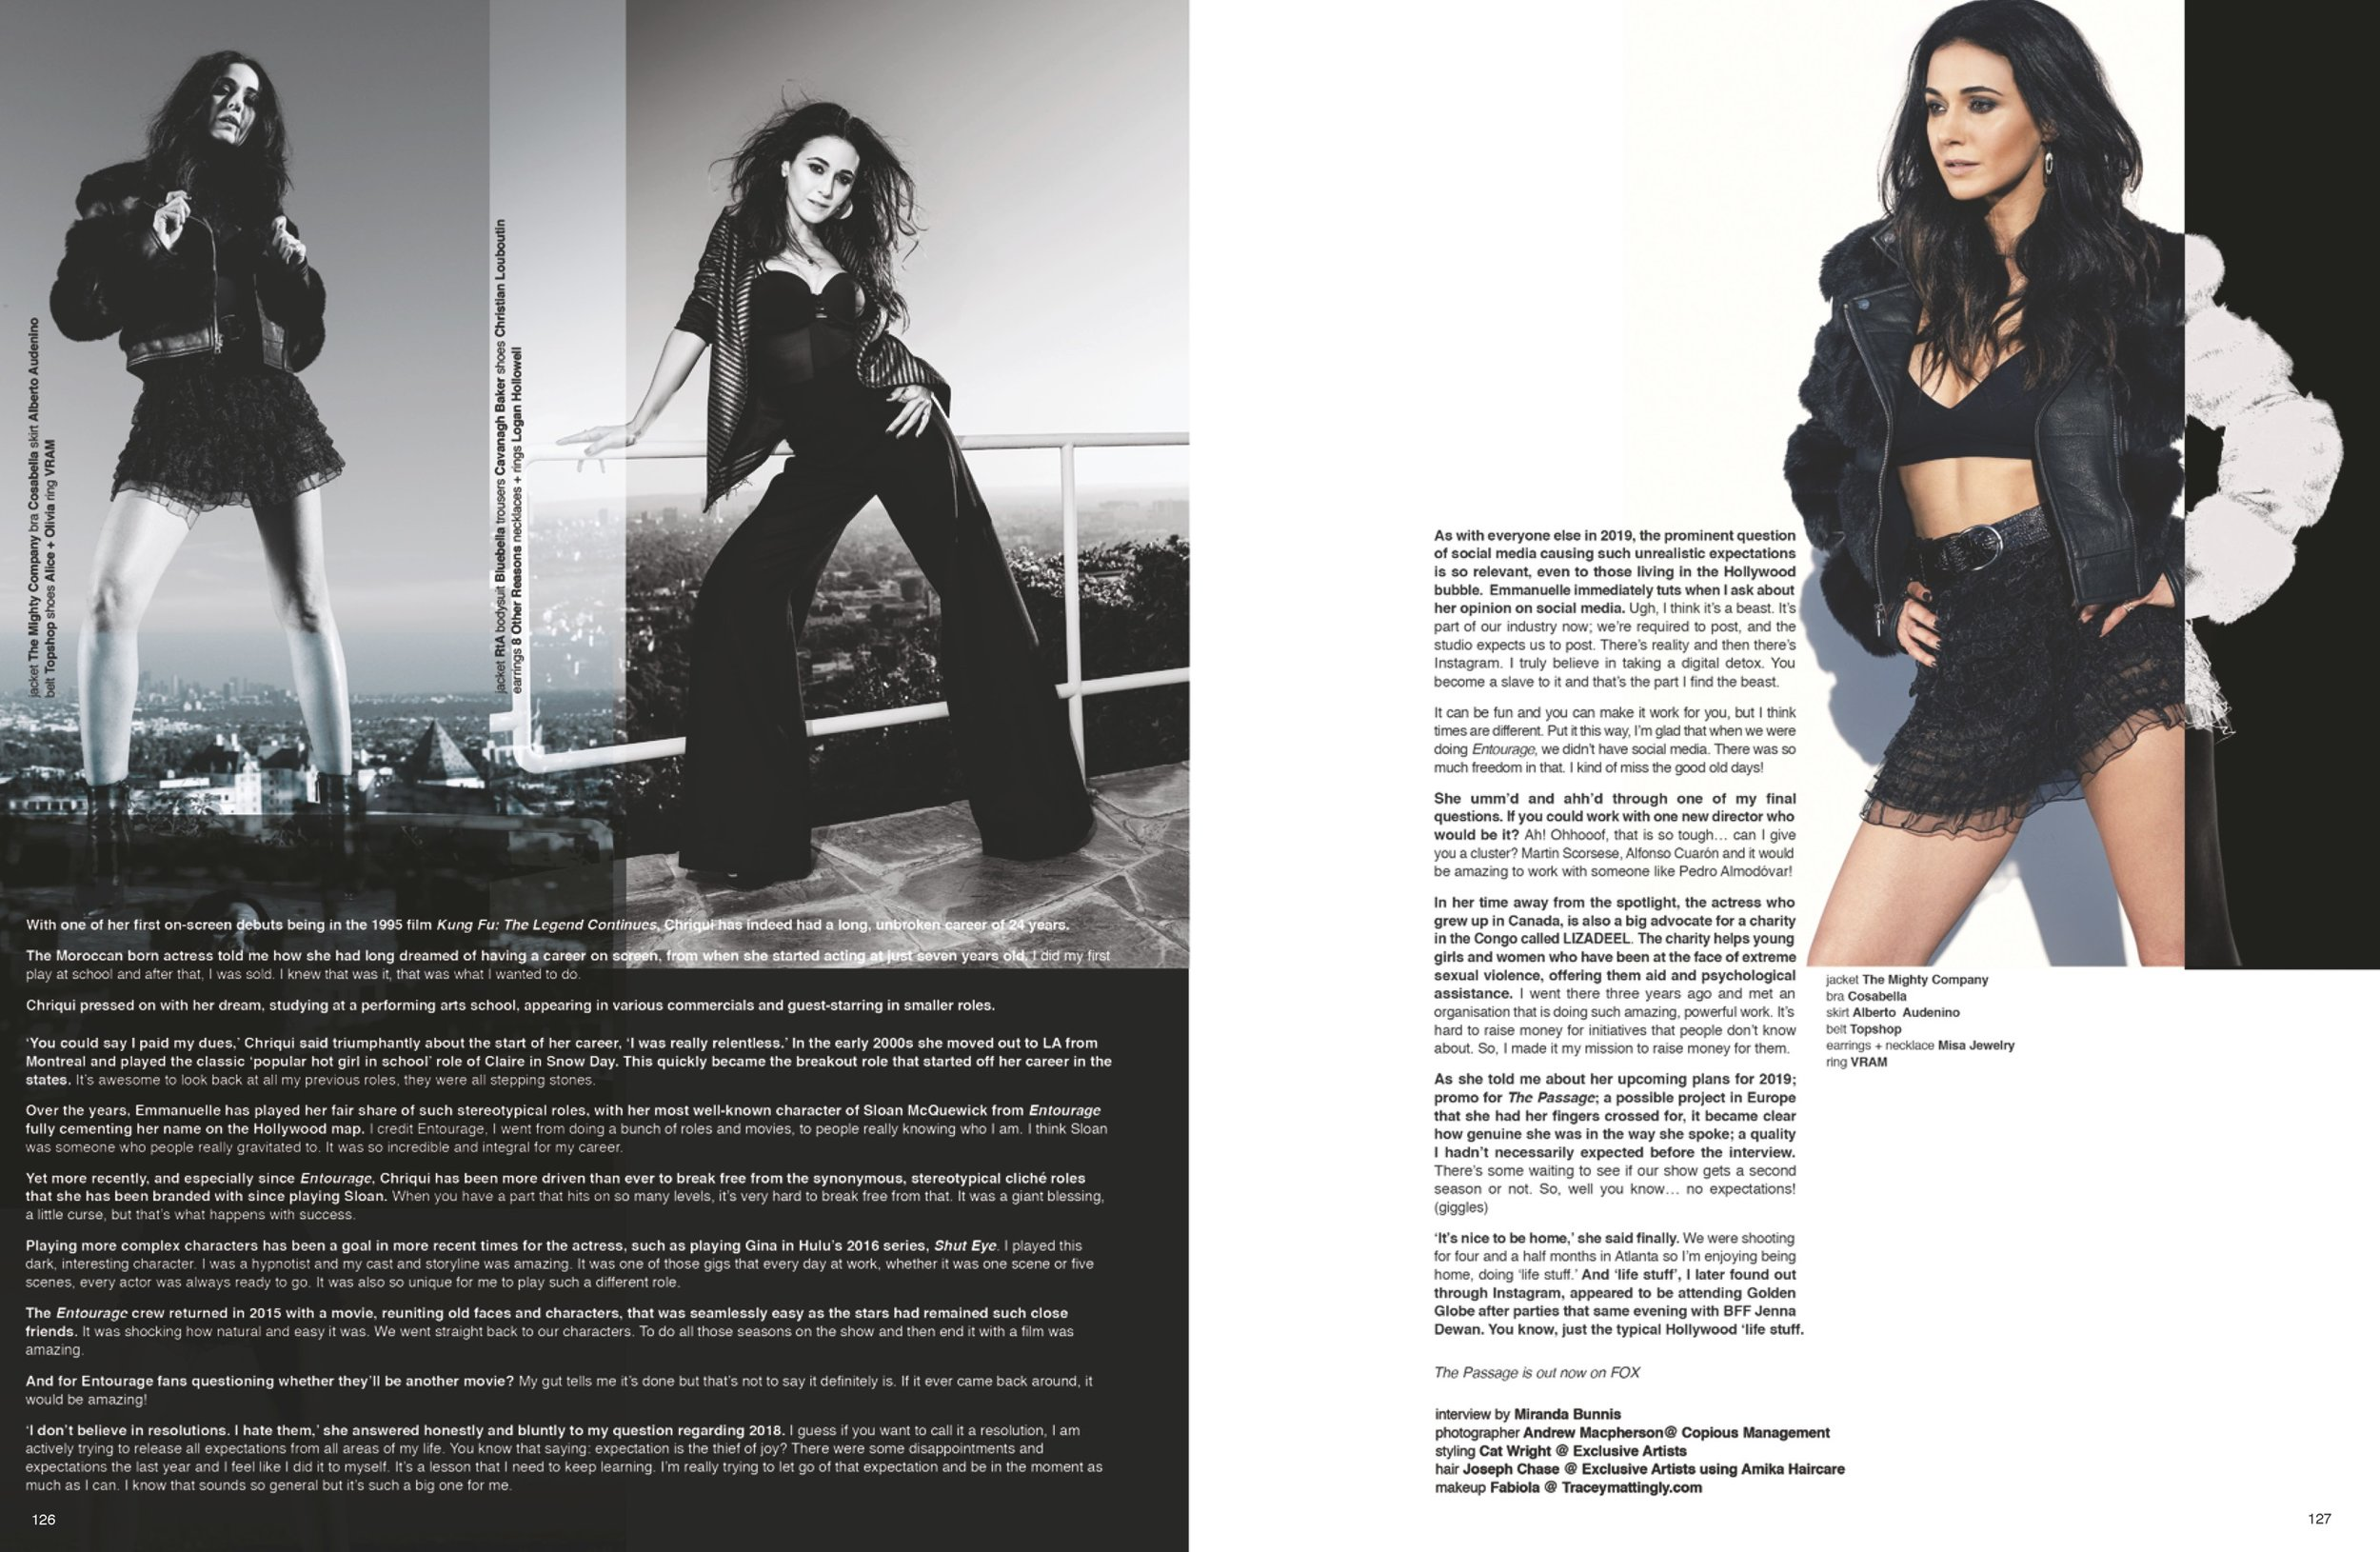 1883_Magazine_EXPOSED_Issue_XIV_Emmanuelle_Chriqui_feature3.jpg